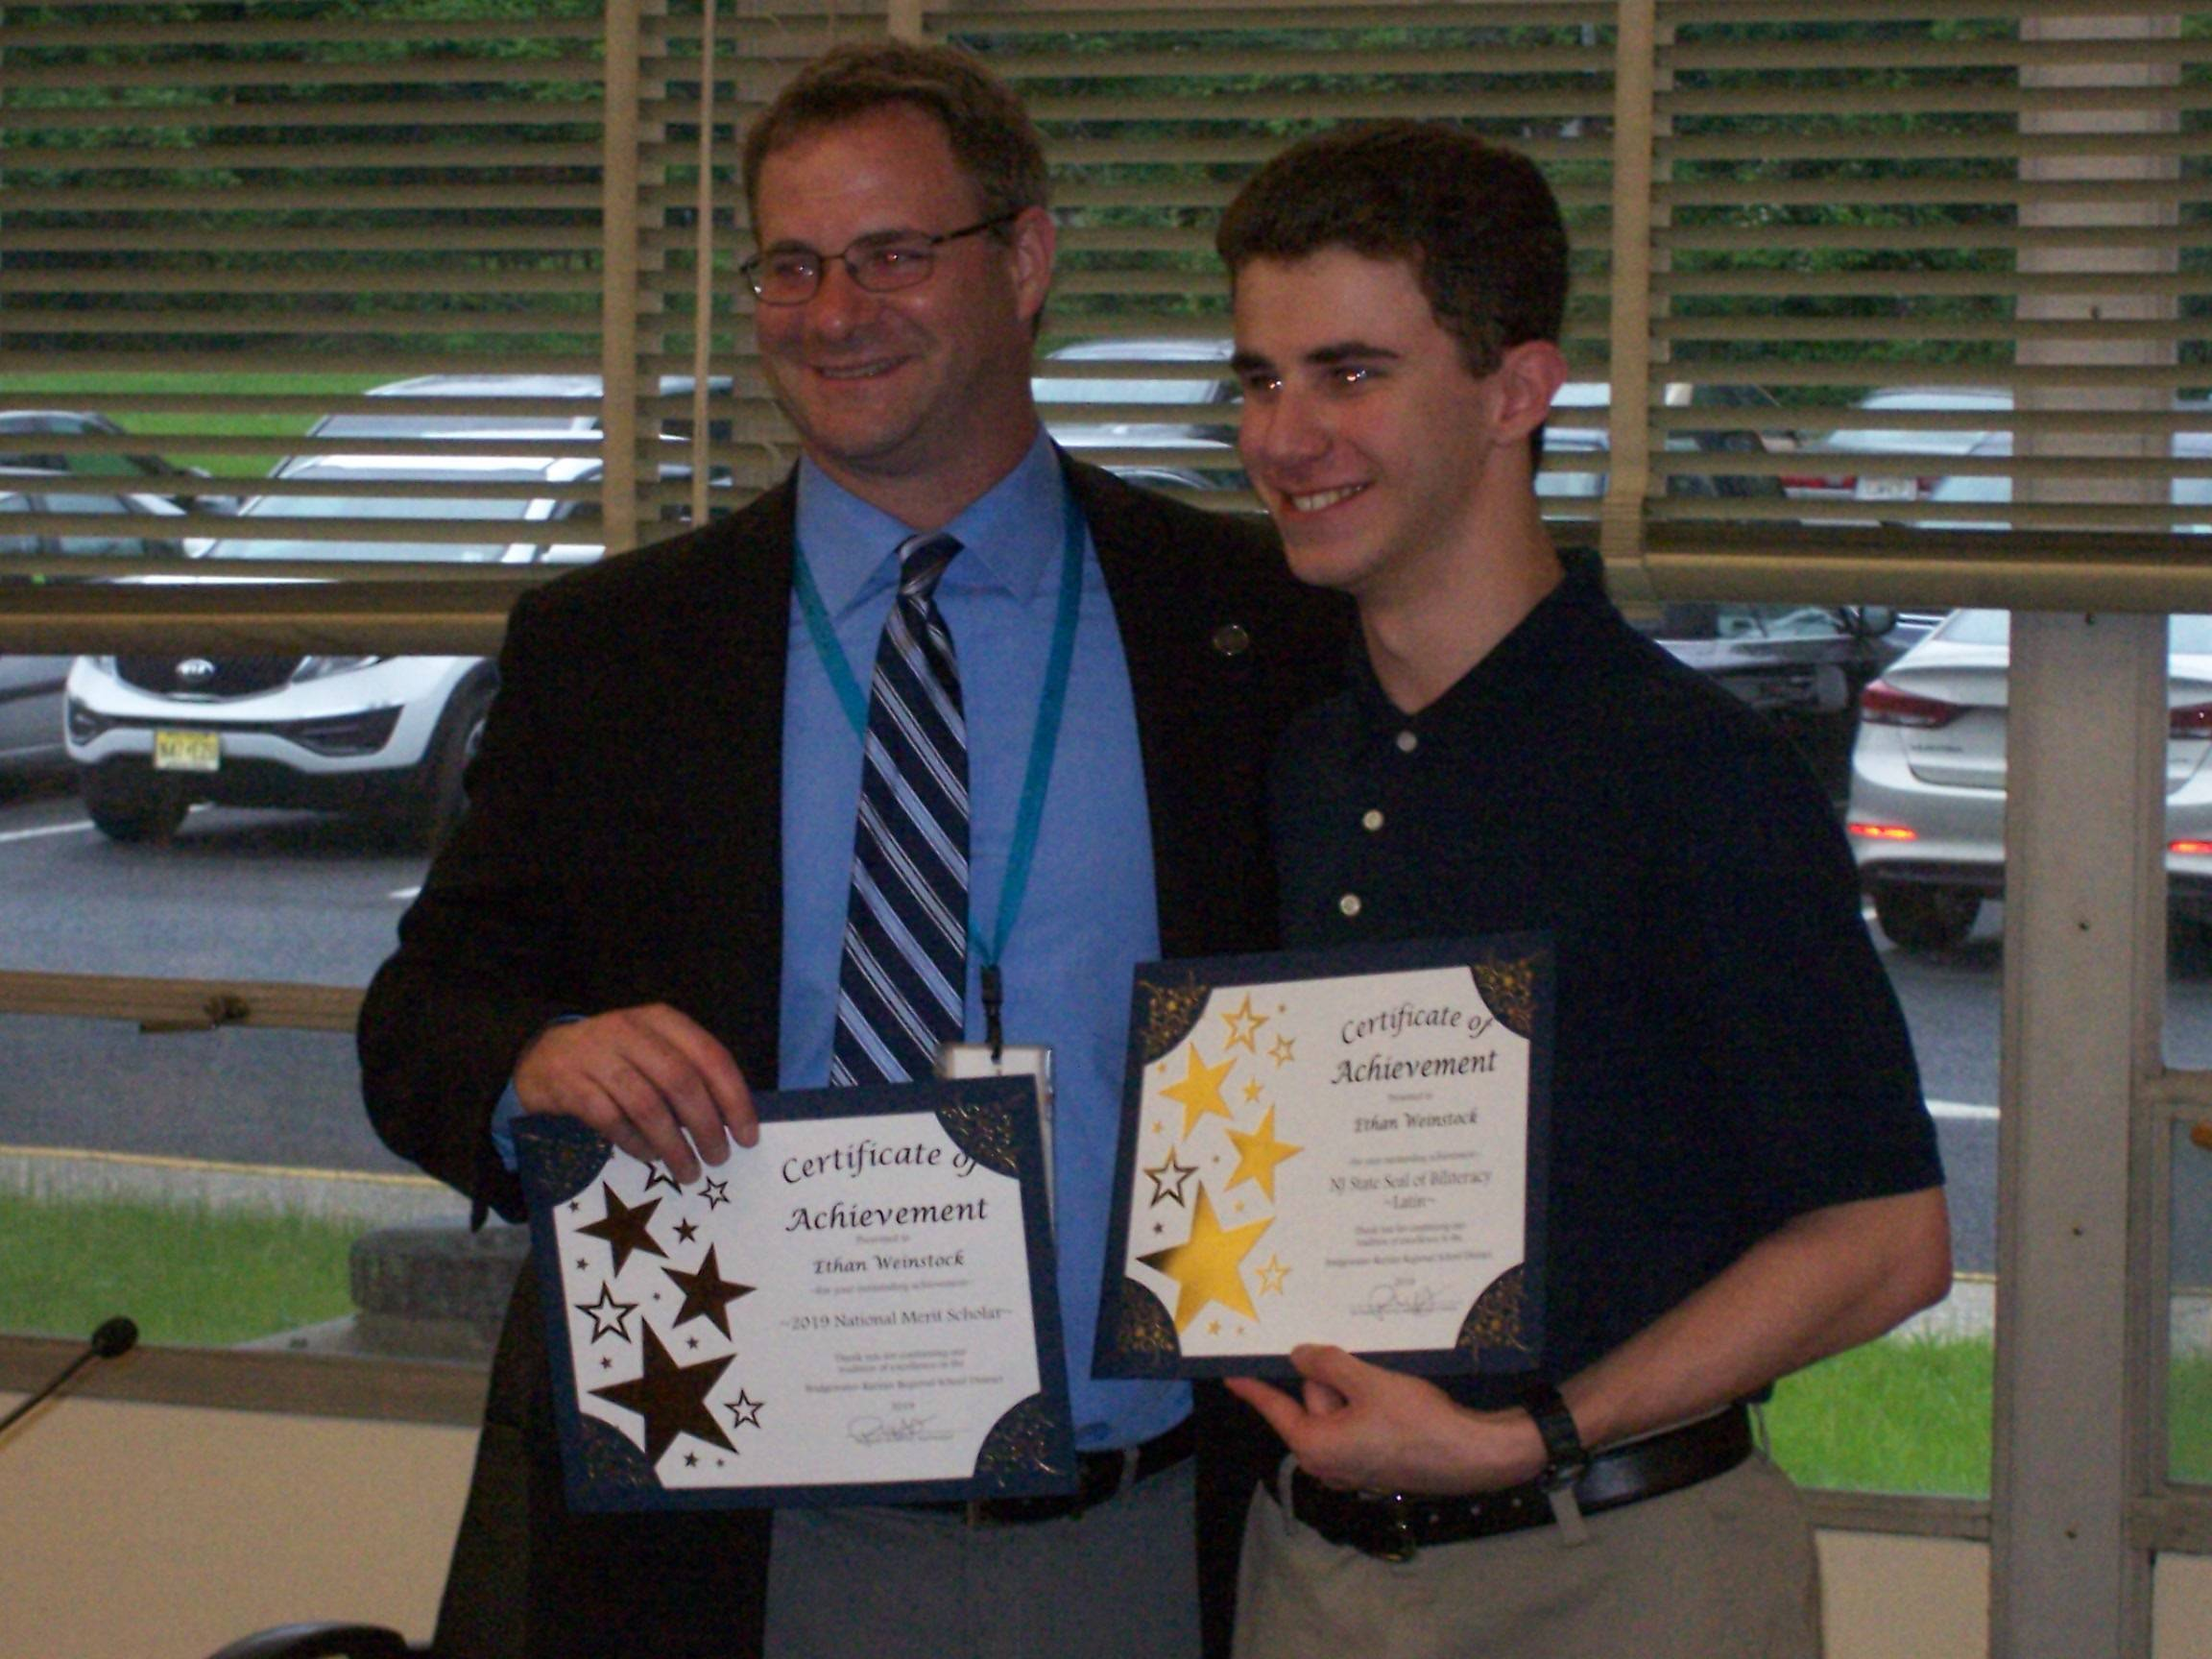 Ethan Weinstock and Superintendent Russell Lazovick